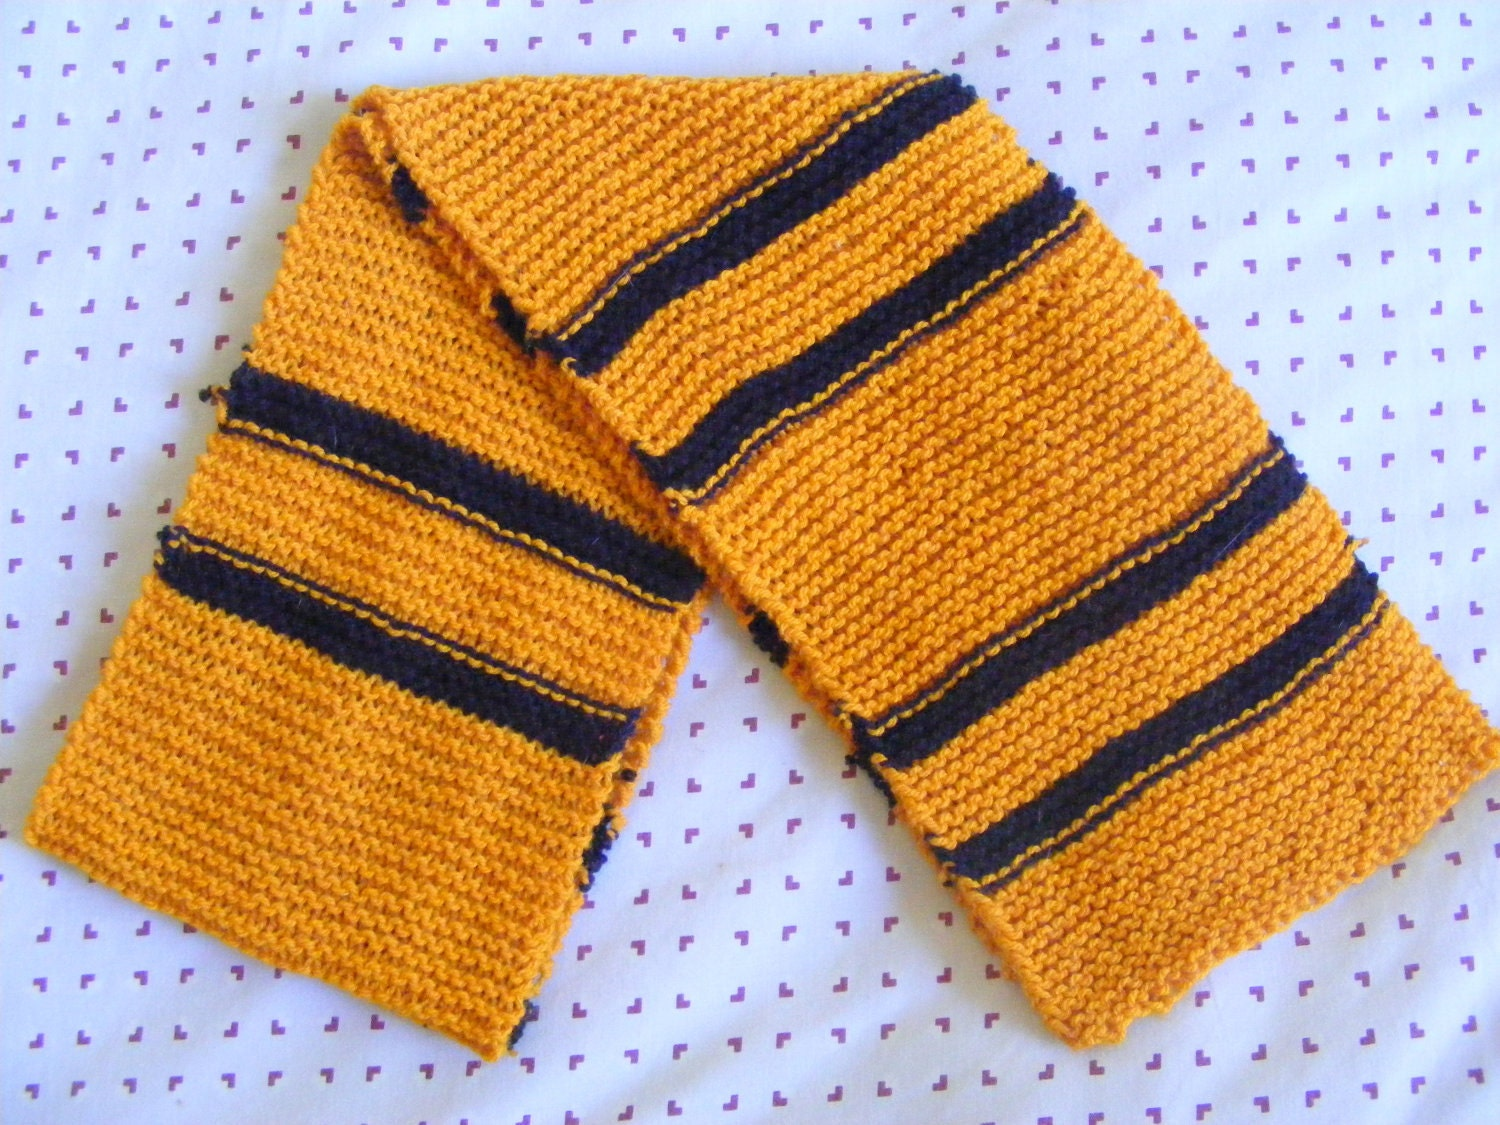 Hand-knitted Hufflepuff scarf.